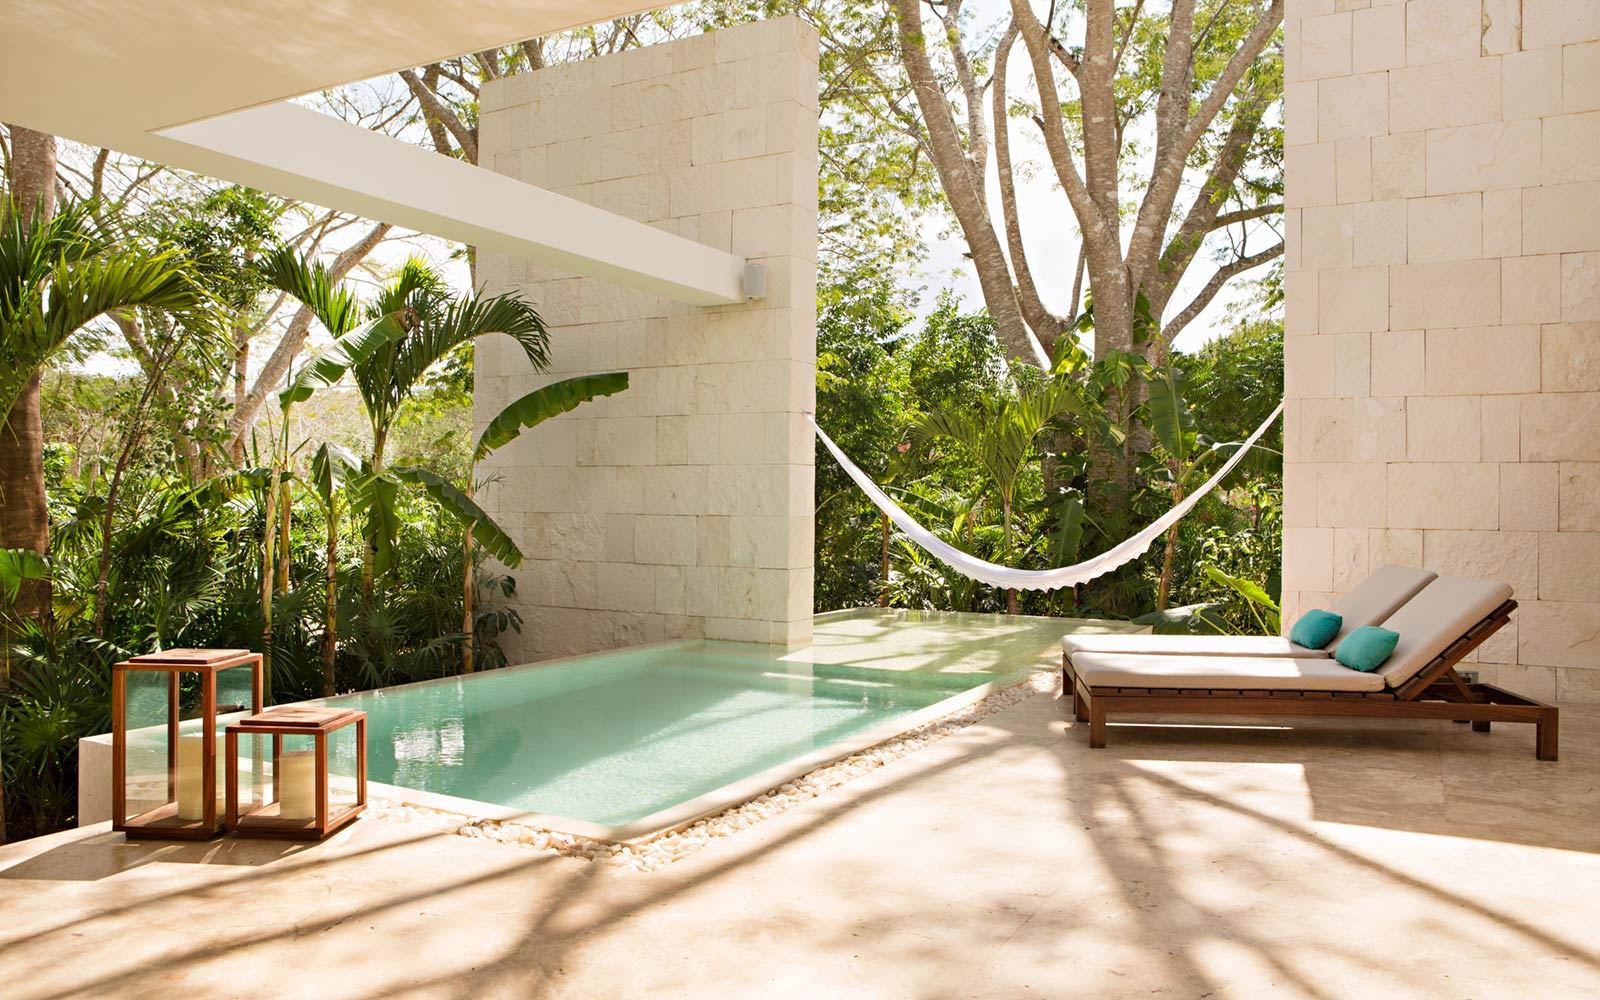 King Villa Pool, Chable, Mexico